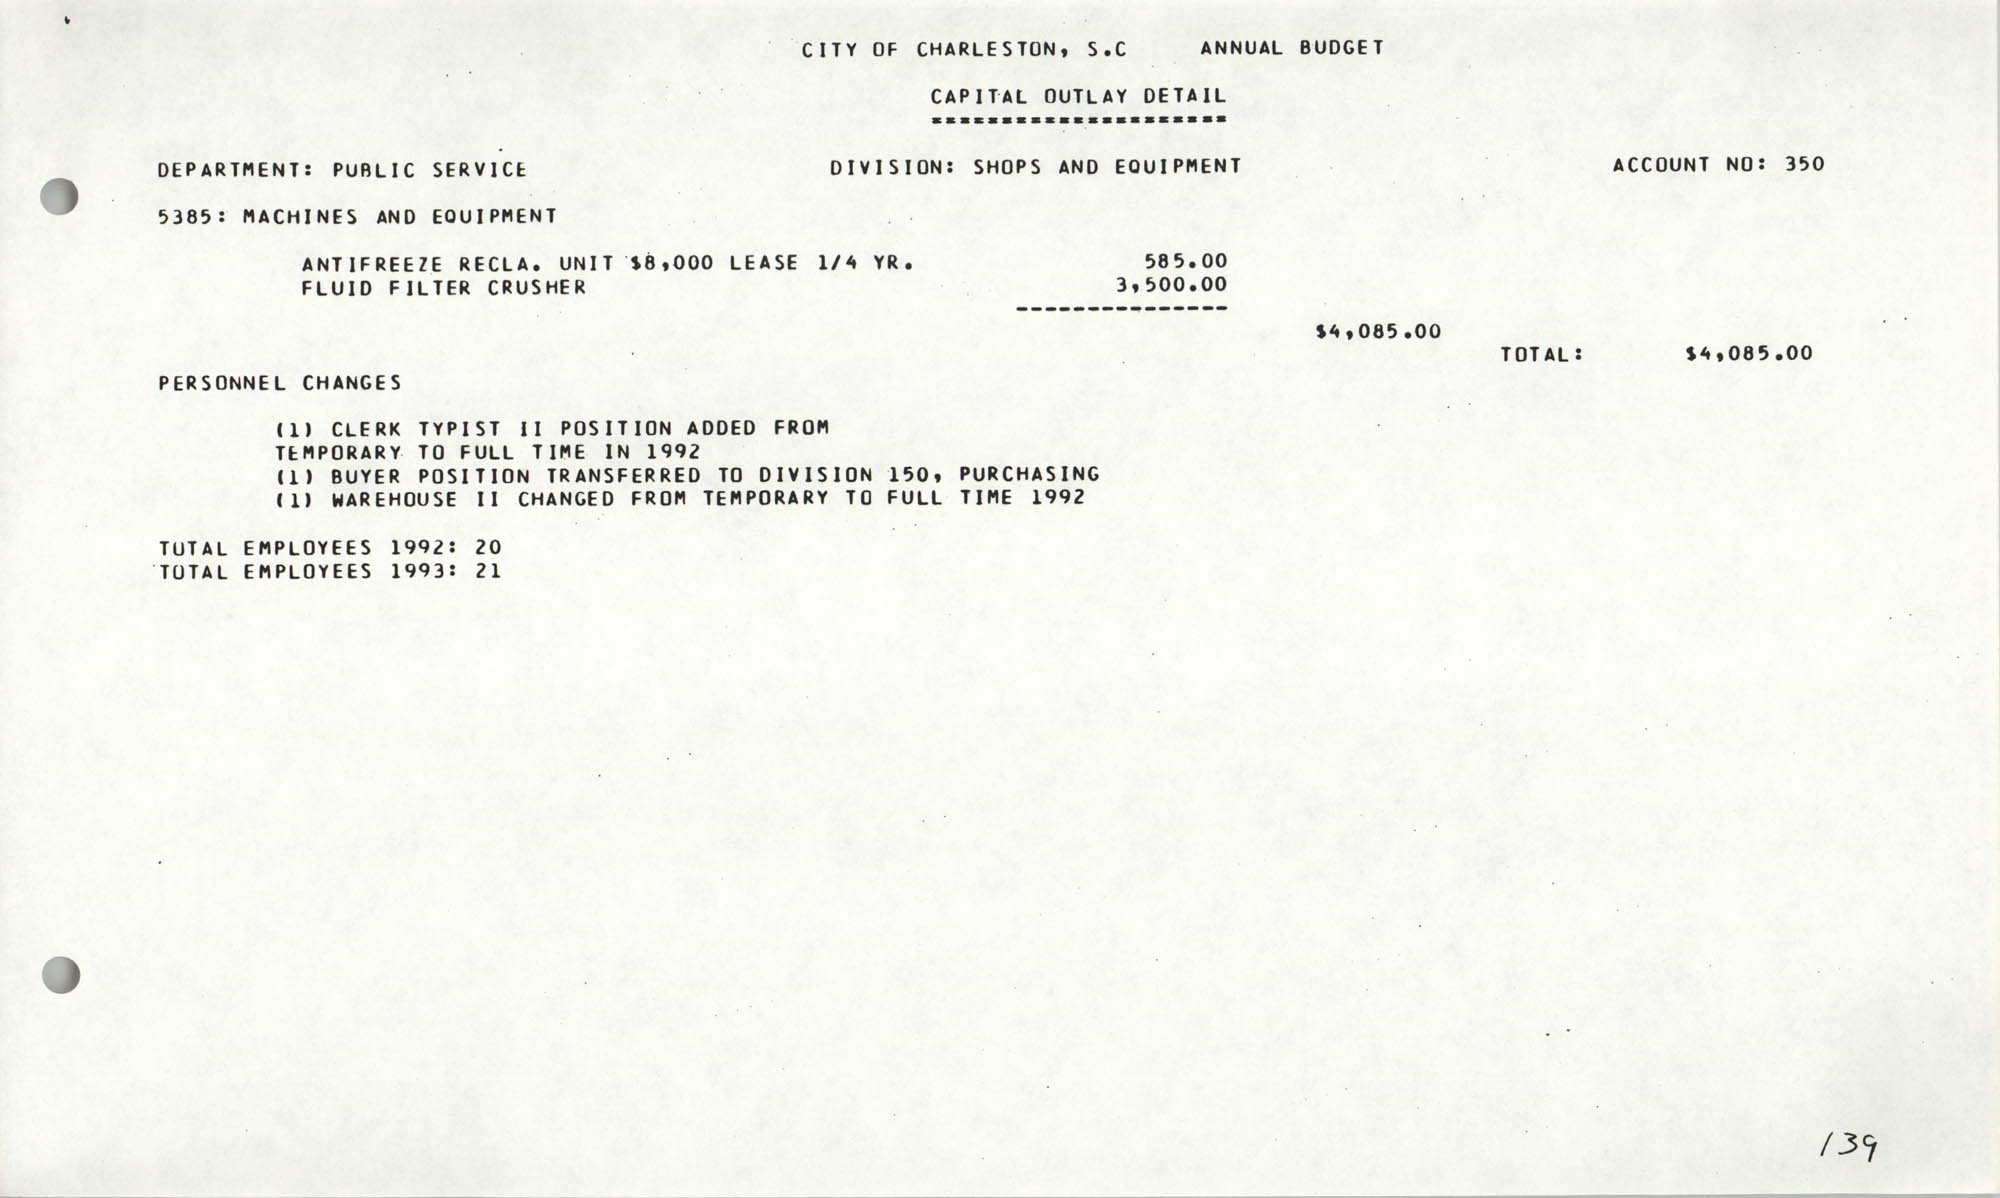 The City Council of Charleston, South Carolina, 1993 Budget, Page 139